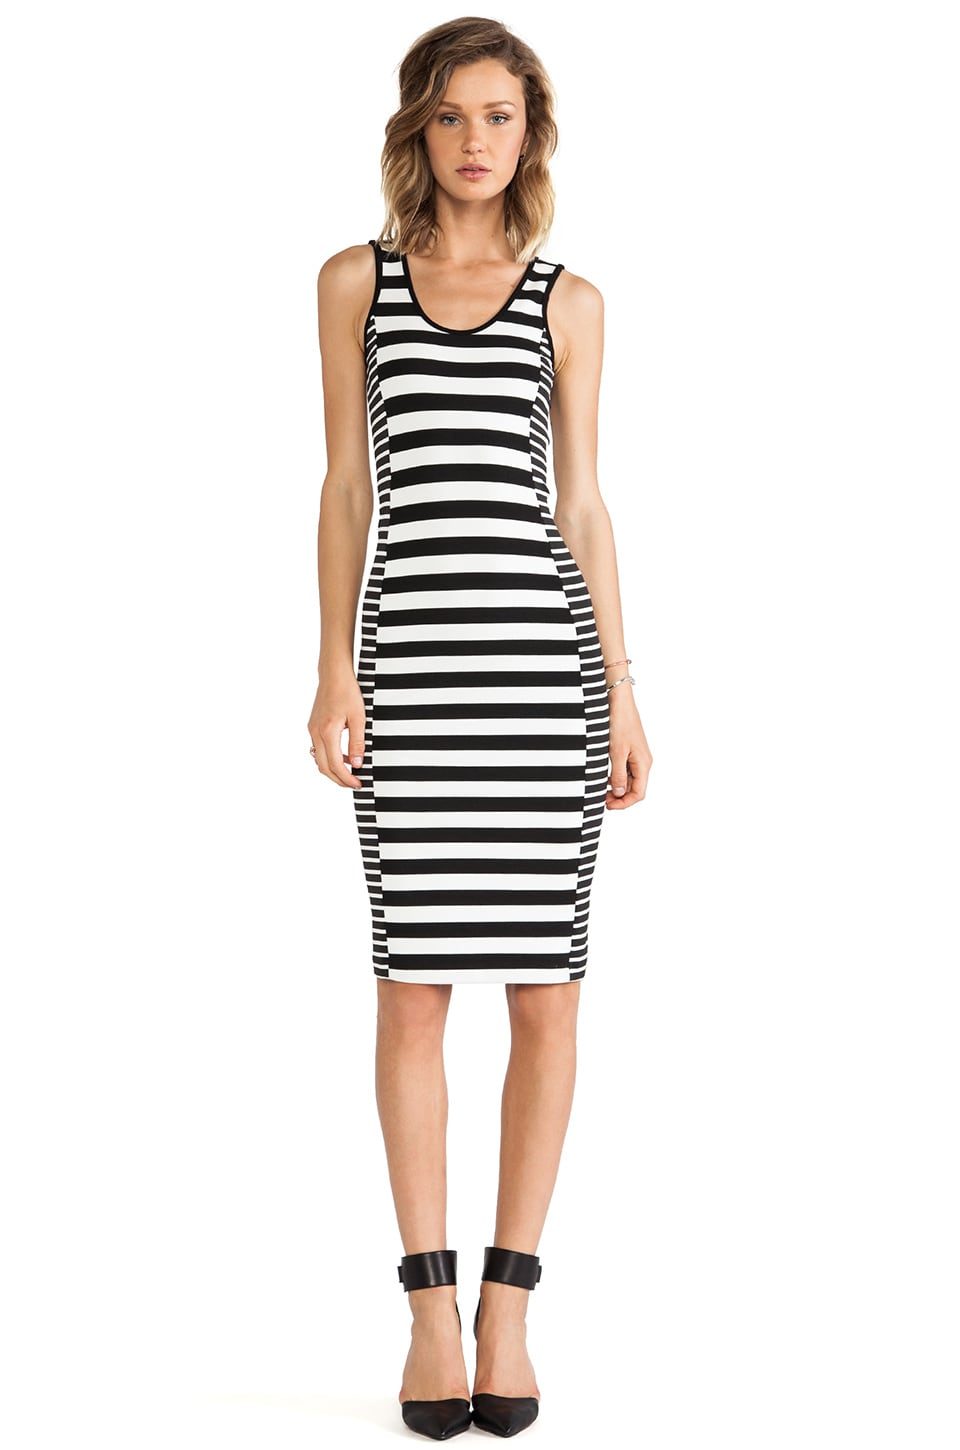 Sanctuary Graphic Bodycon Dress in Black & White